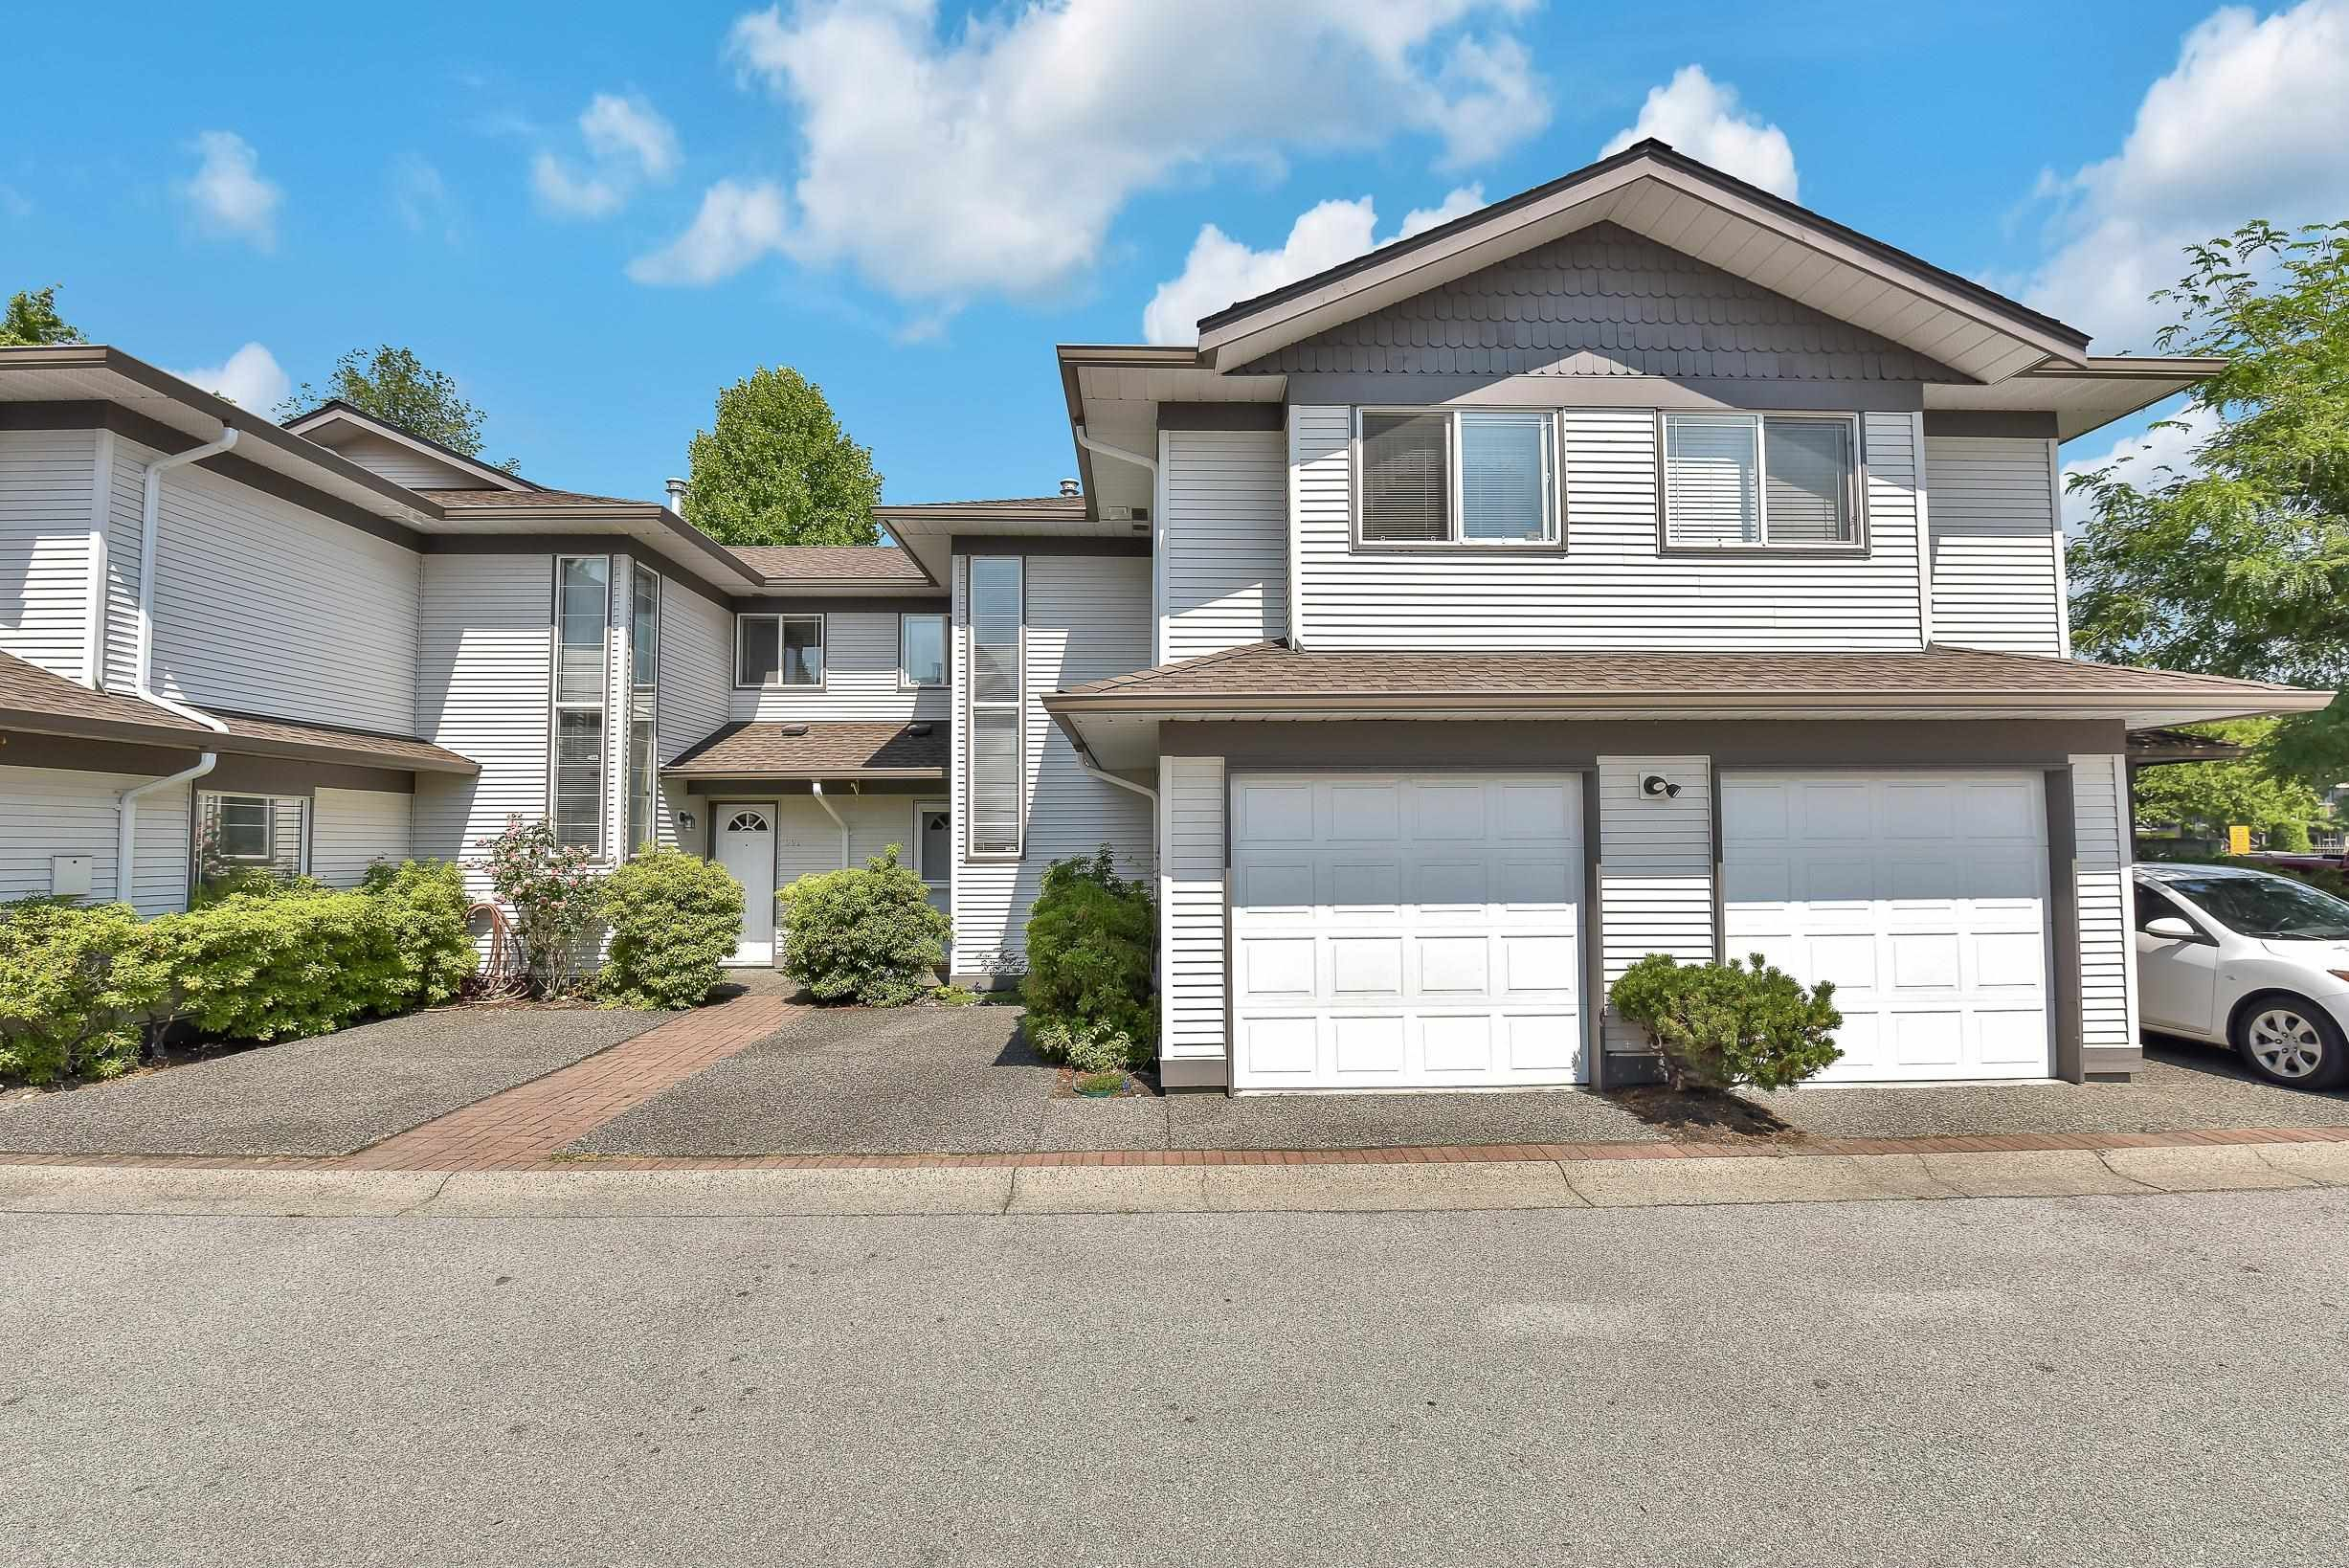 """Main Photo: 319 16233 82 Avenue in Surrey: Fleetwood Tynehead Townhouse for sale in """"The Orchards"""" : MLS®# R2606826"""